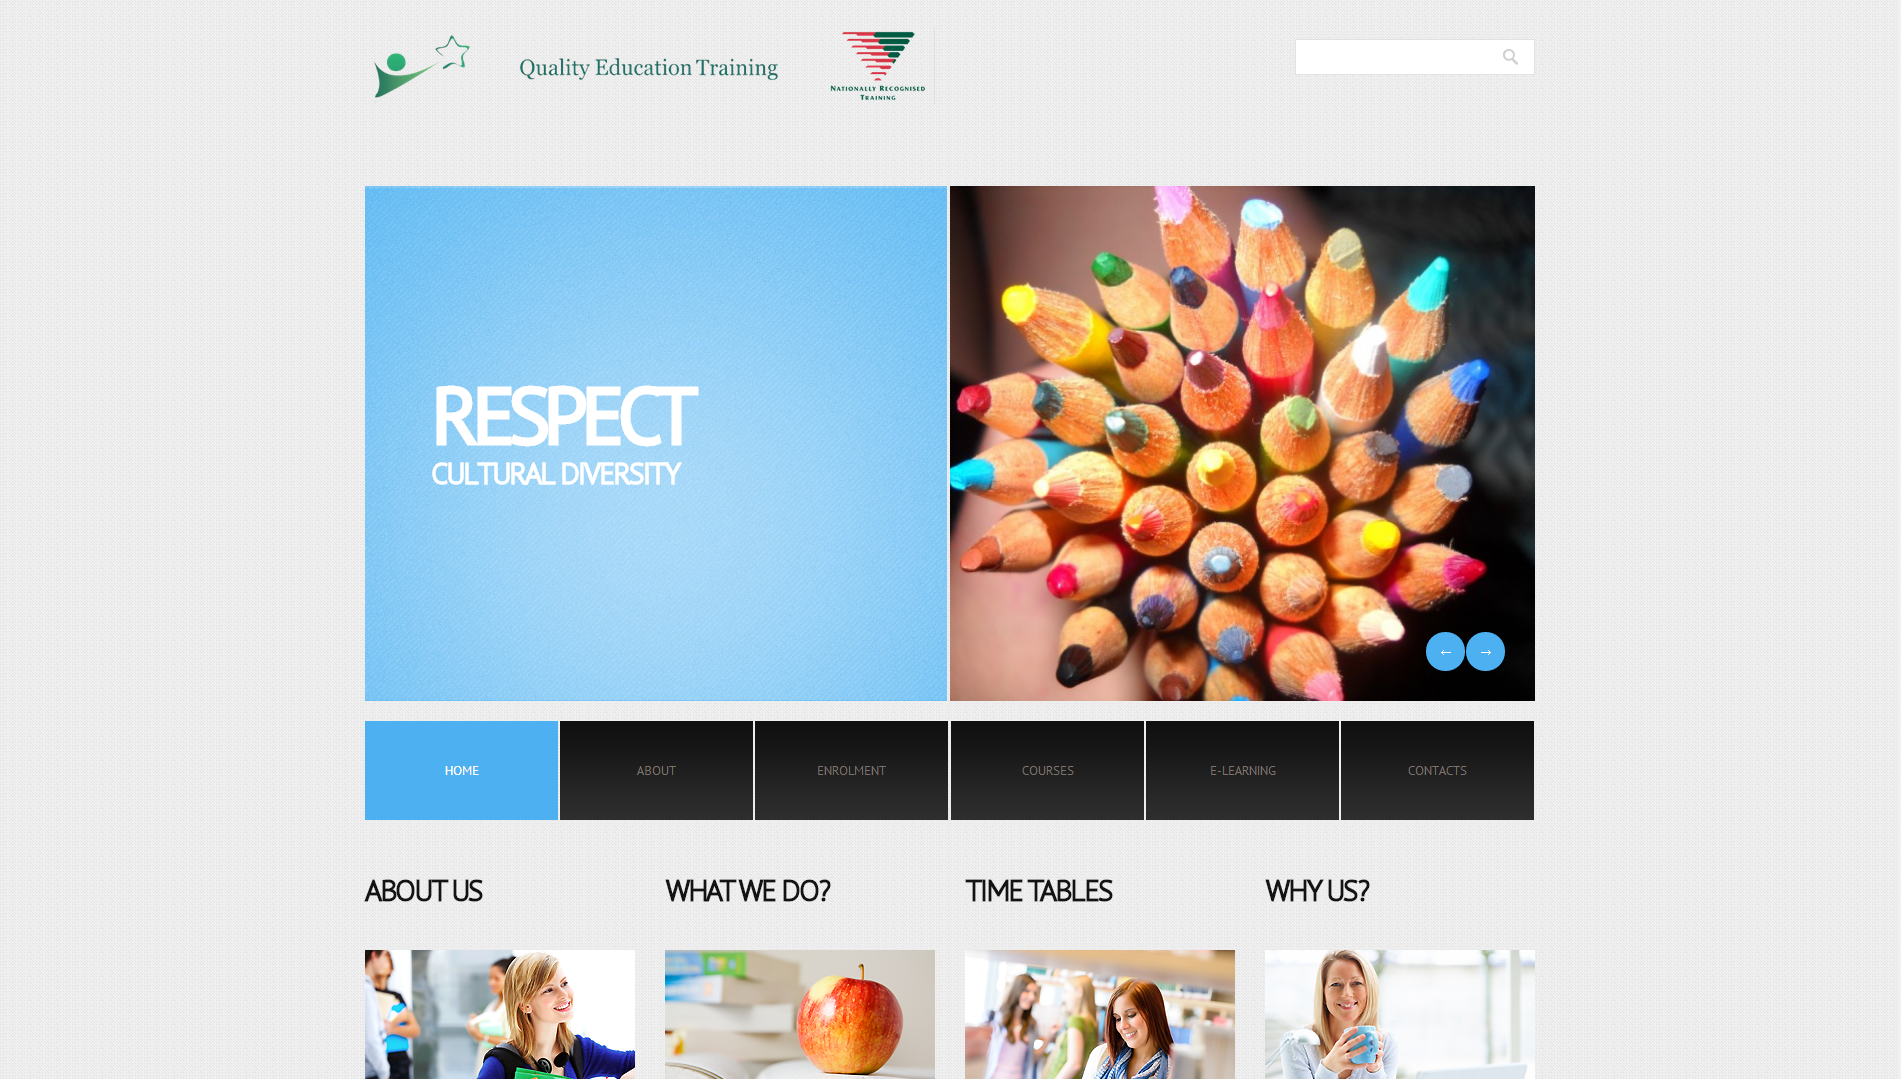 Quality Education Training Website Design